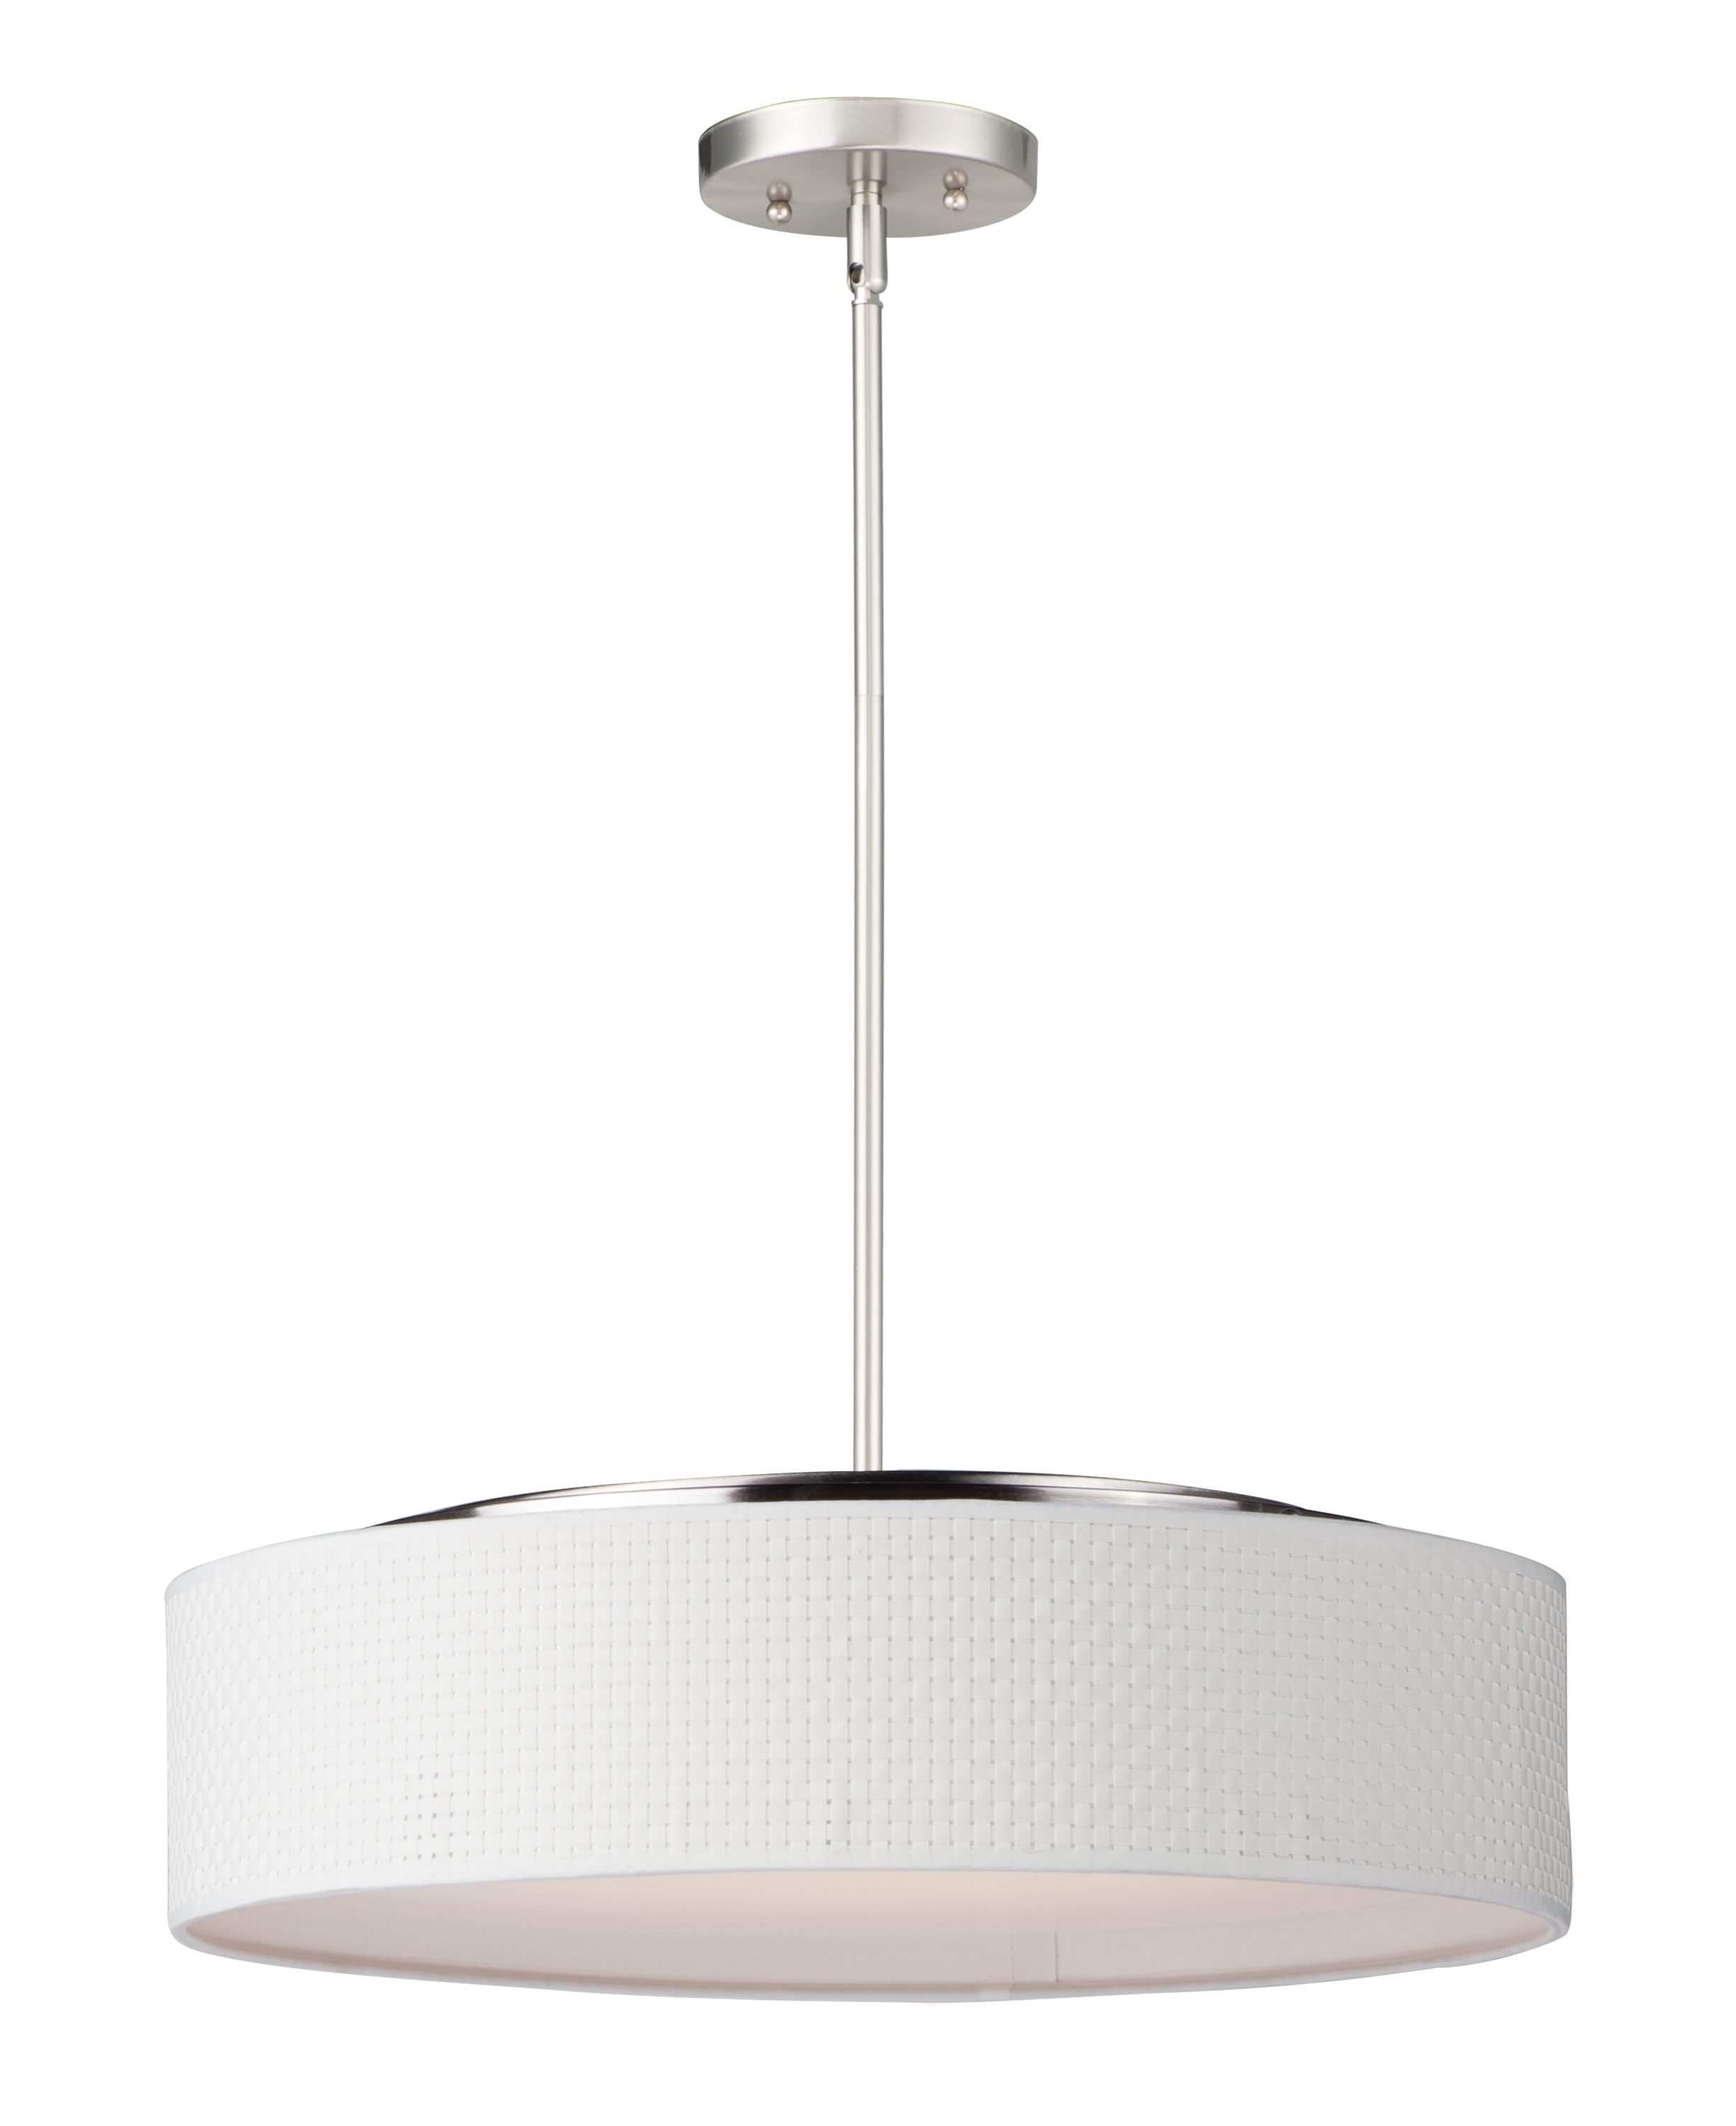 Prime Pendant | Maxim Lighting